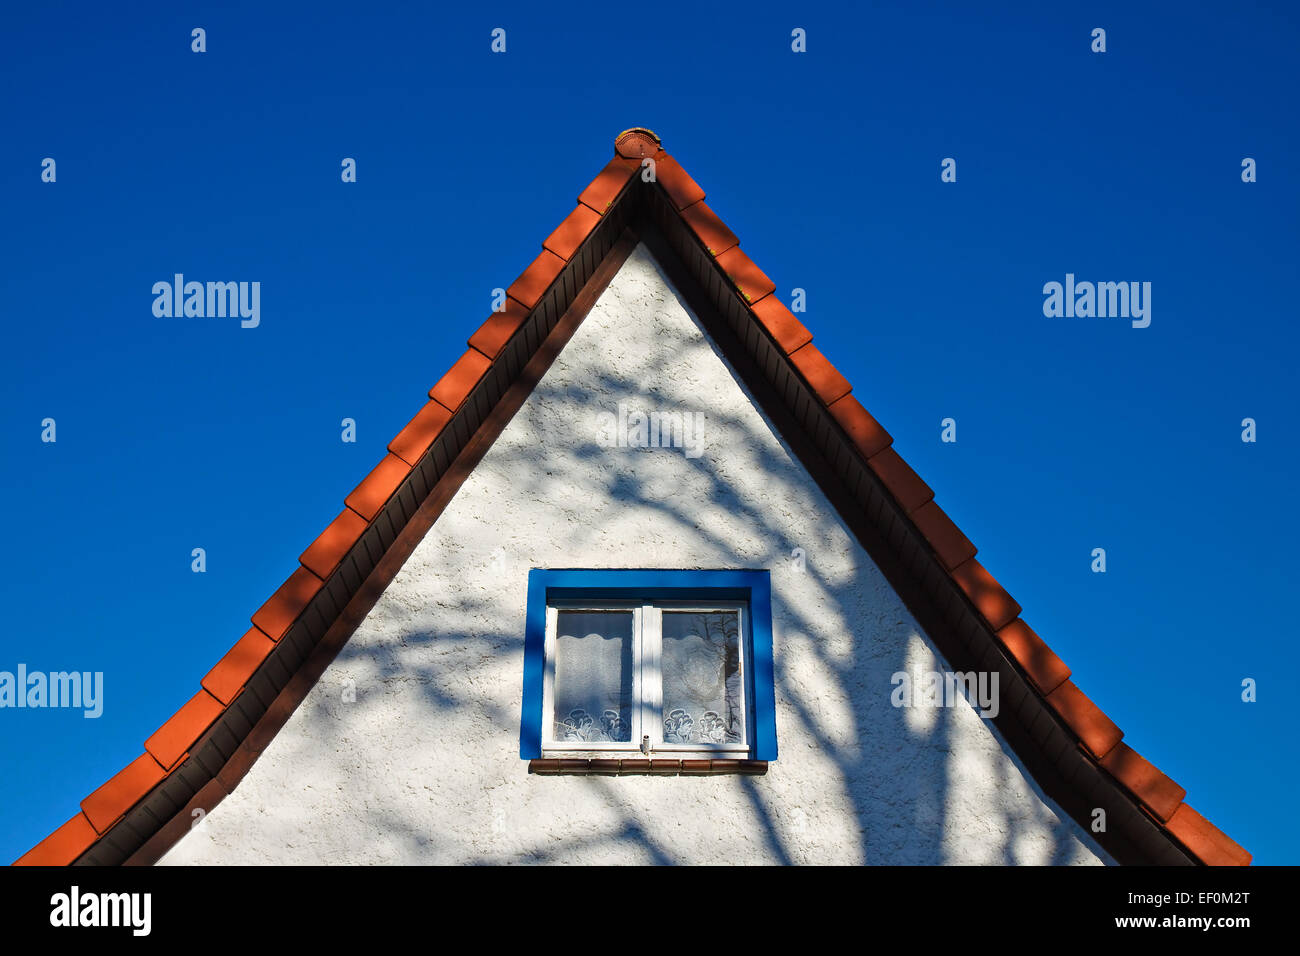 A house gable. - Stock Image